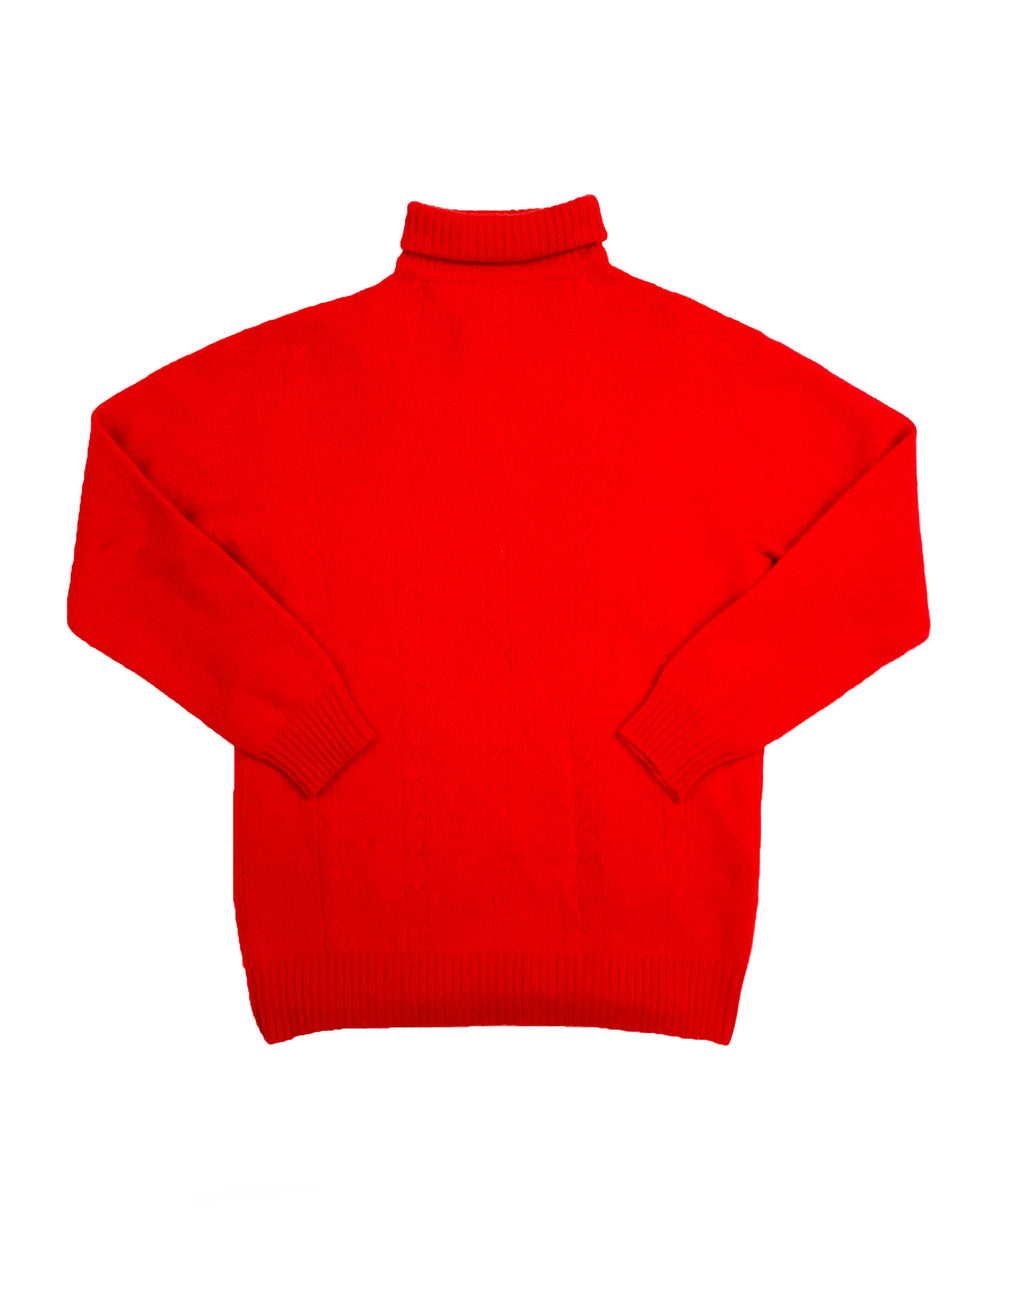 KAPPA RED MOHAIR TURTLE NECK JUMPER